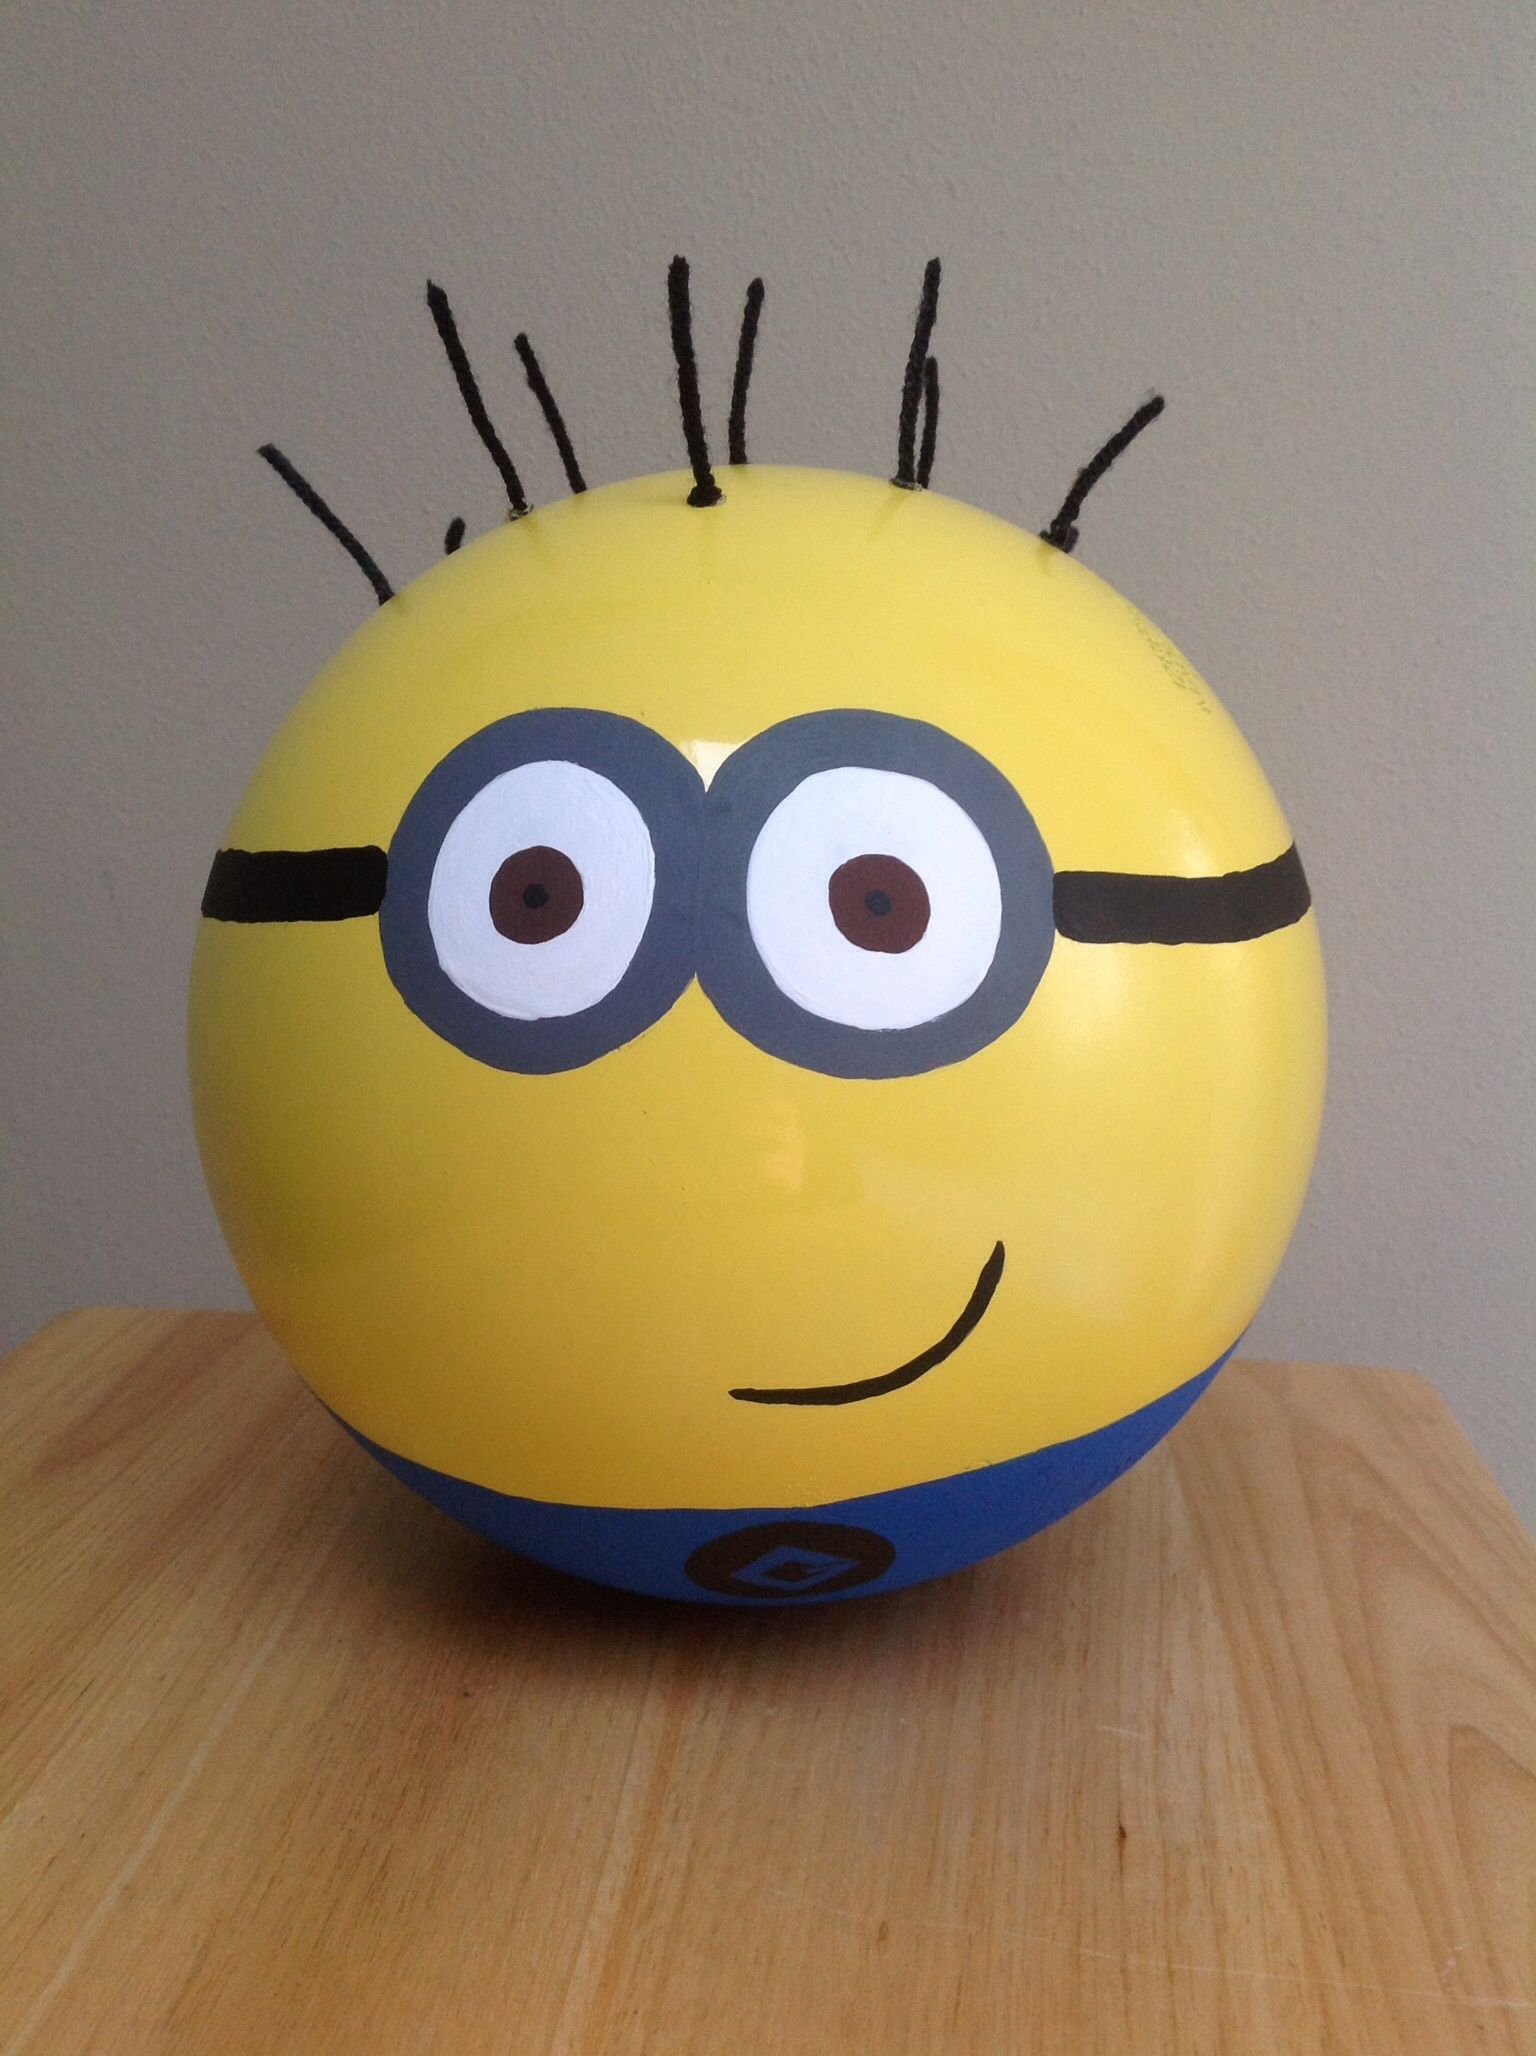 Minion From Despicable Me Made From An Old Bowling Ball Garden